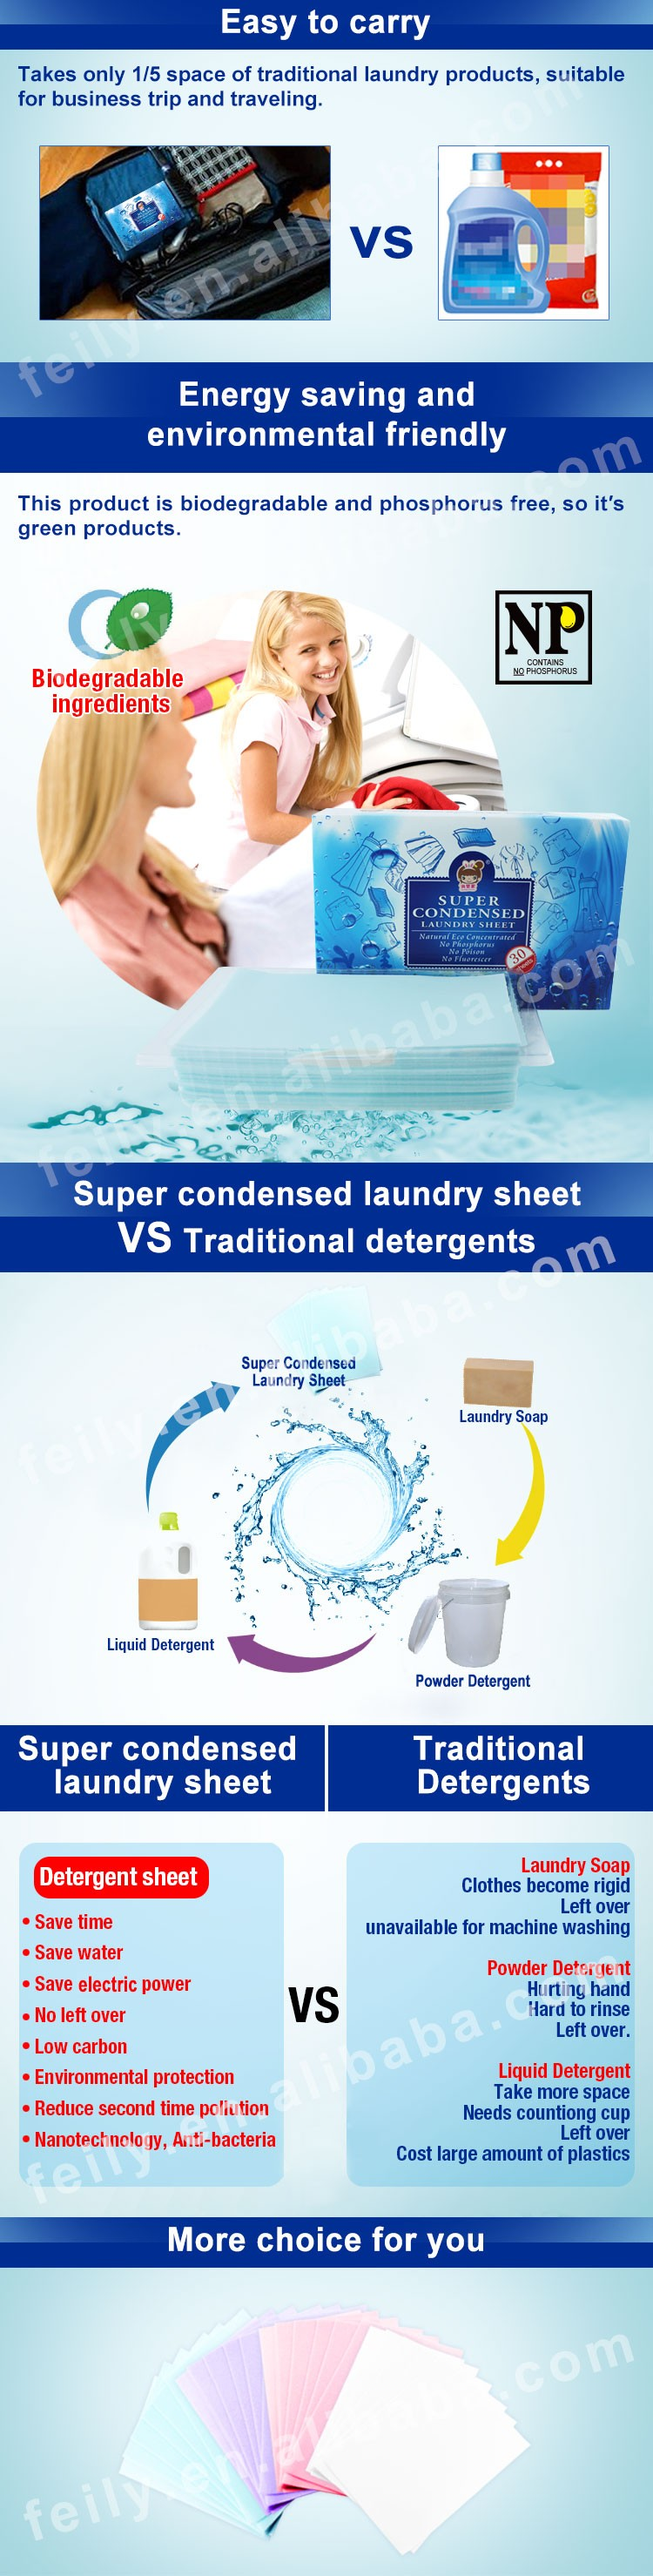 high condensed laundry detergent sheets/laundry paper/laundry sheets